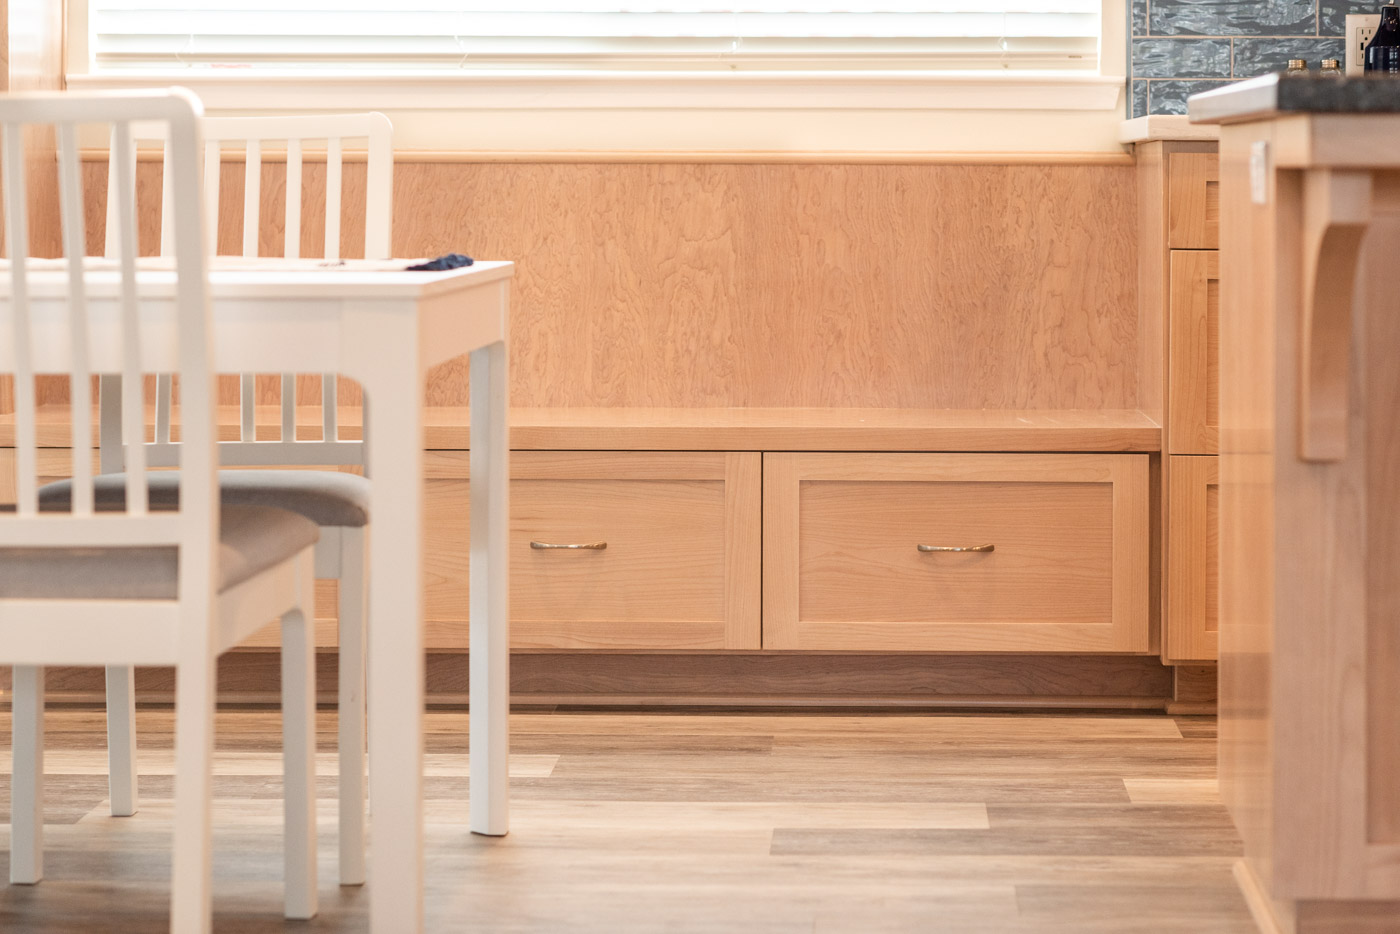 Coastal Contemporary custom kitchen cabinets with natural wood stain and built in bench